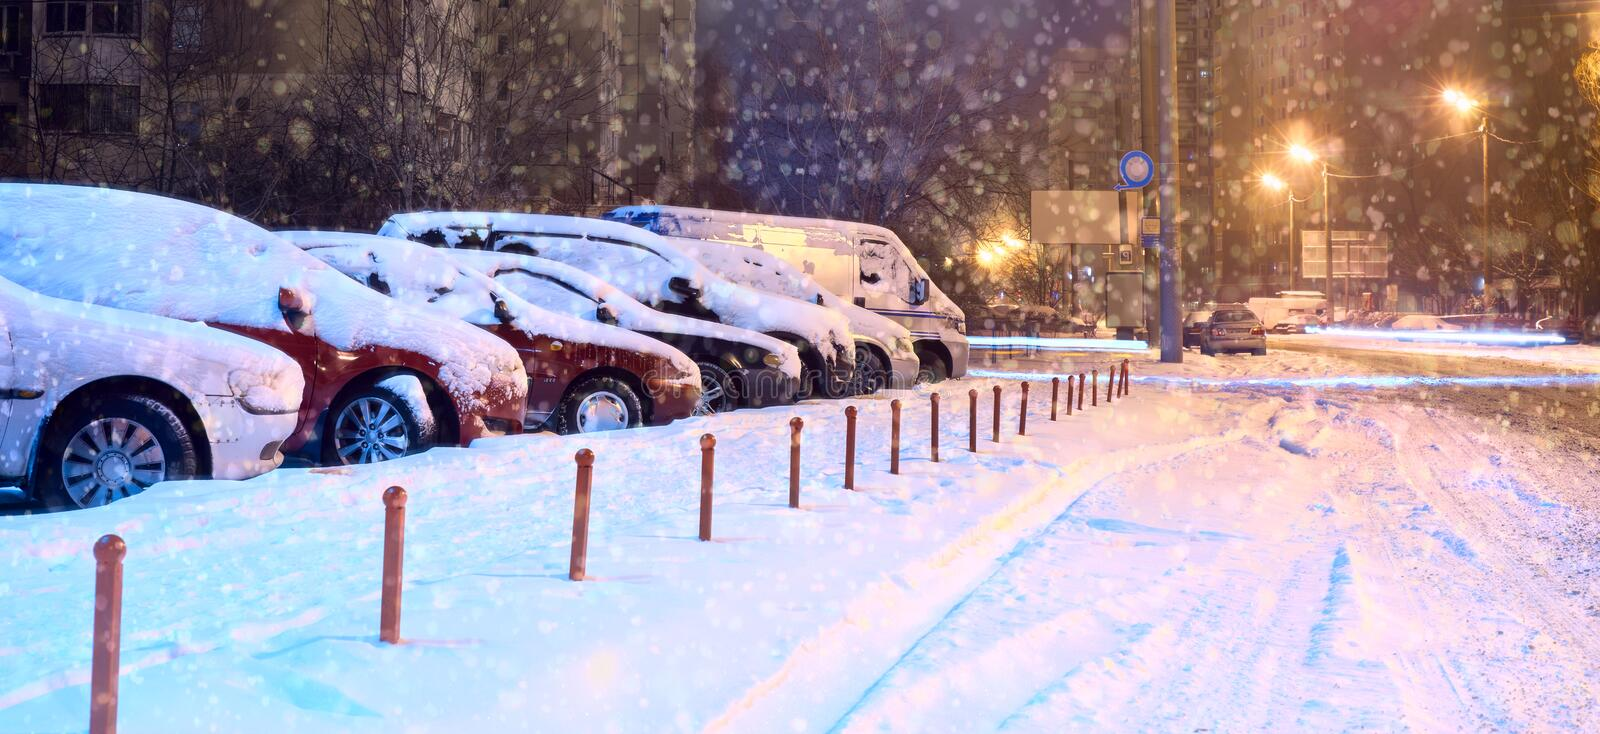 Cars in the parking lot in the winter.  stock photo